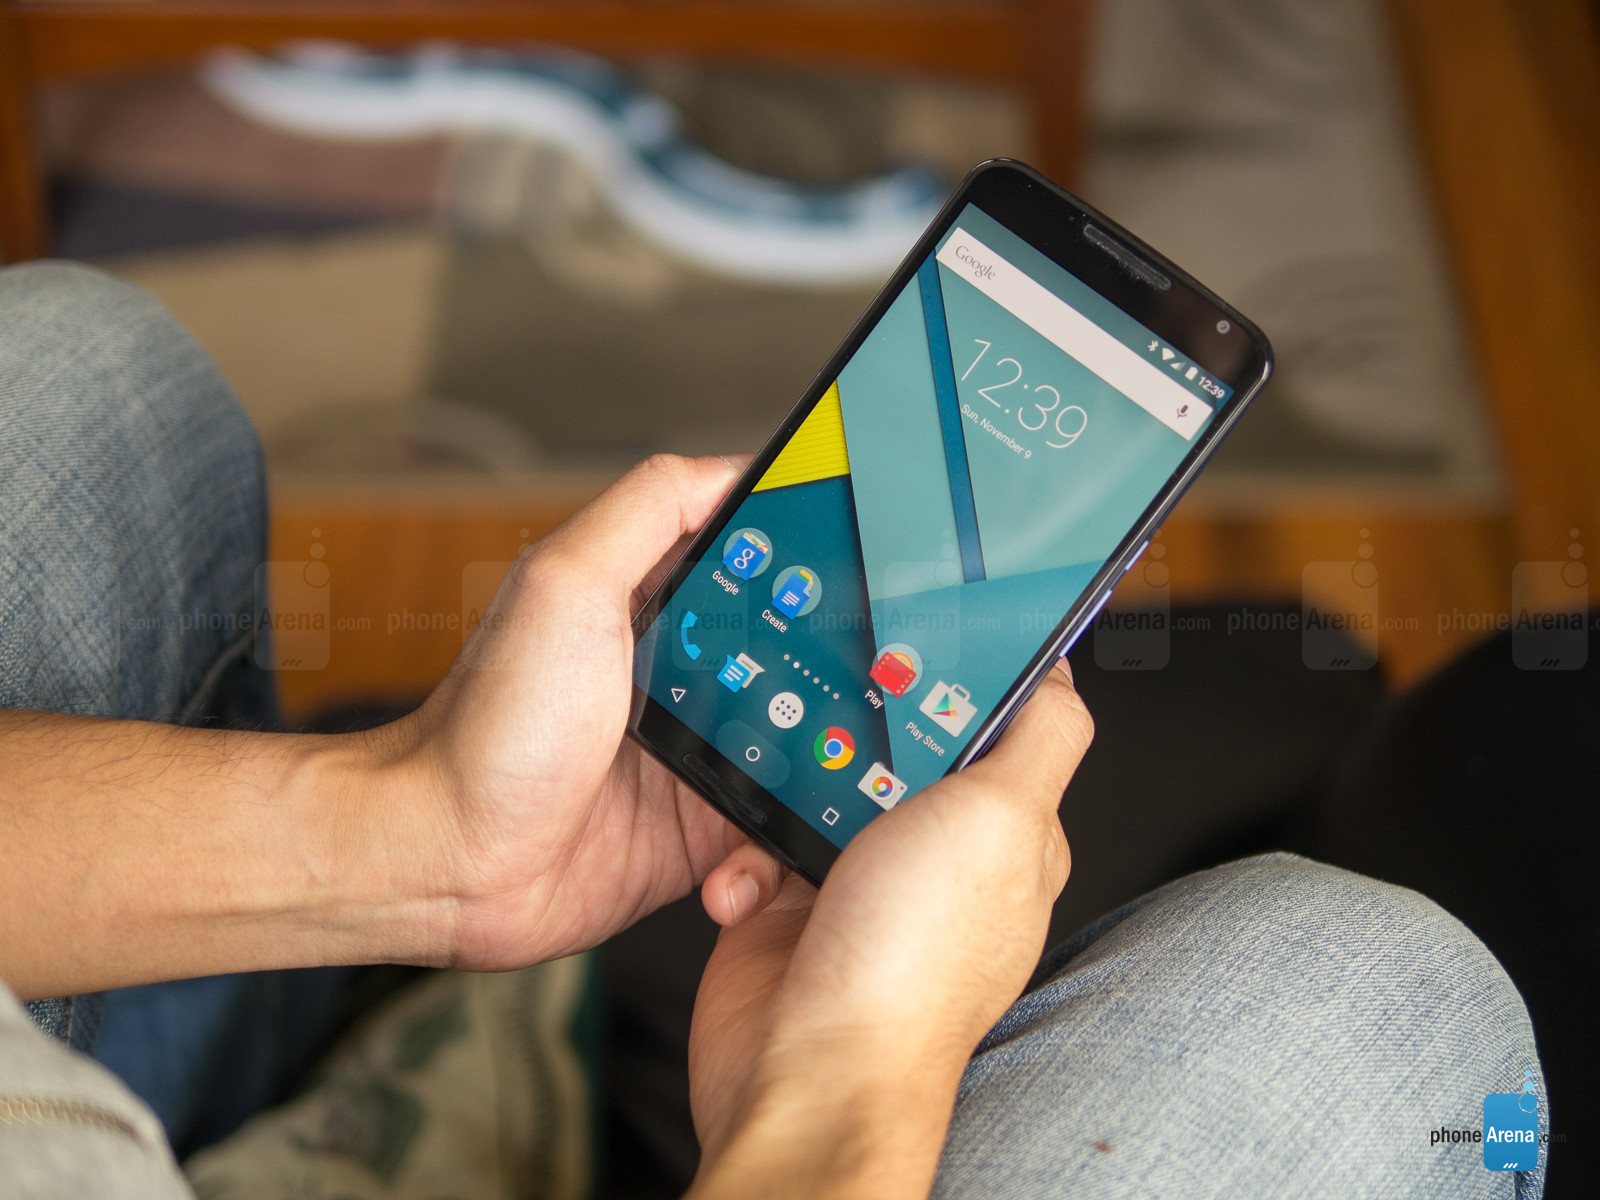 1418378740_google-nexus-6-review-002.jpg